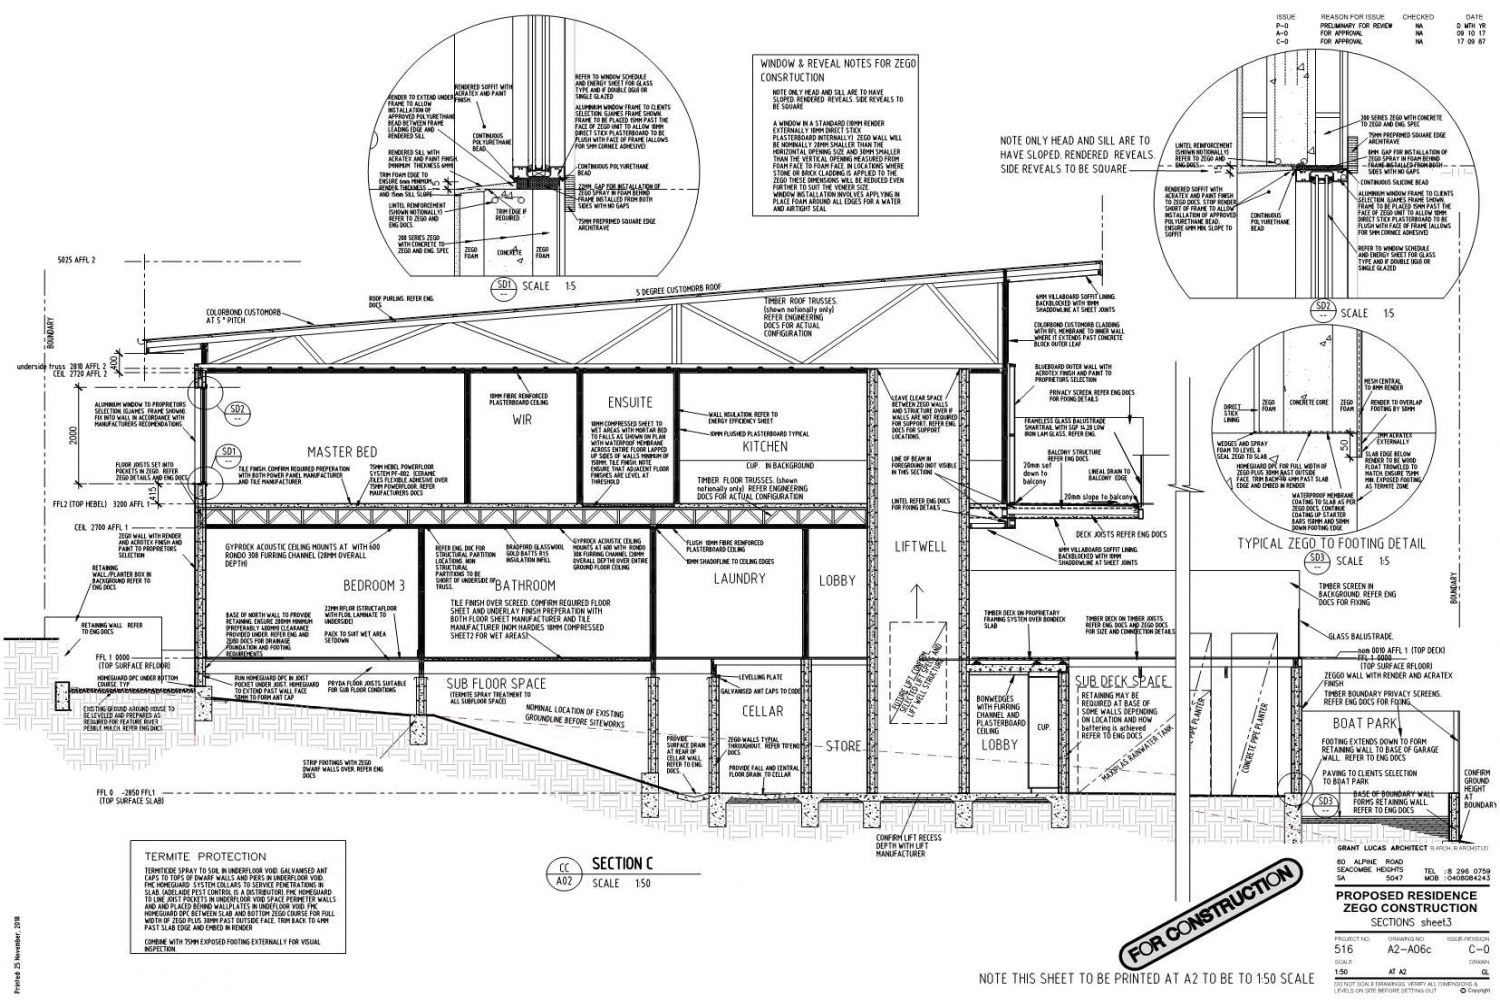 Owner Builder Zego Construction  2 storey Home at Port Noarlunga: Working Drawings Sheet 19: Sections sheet 3